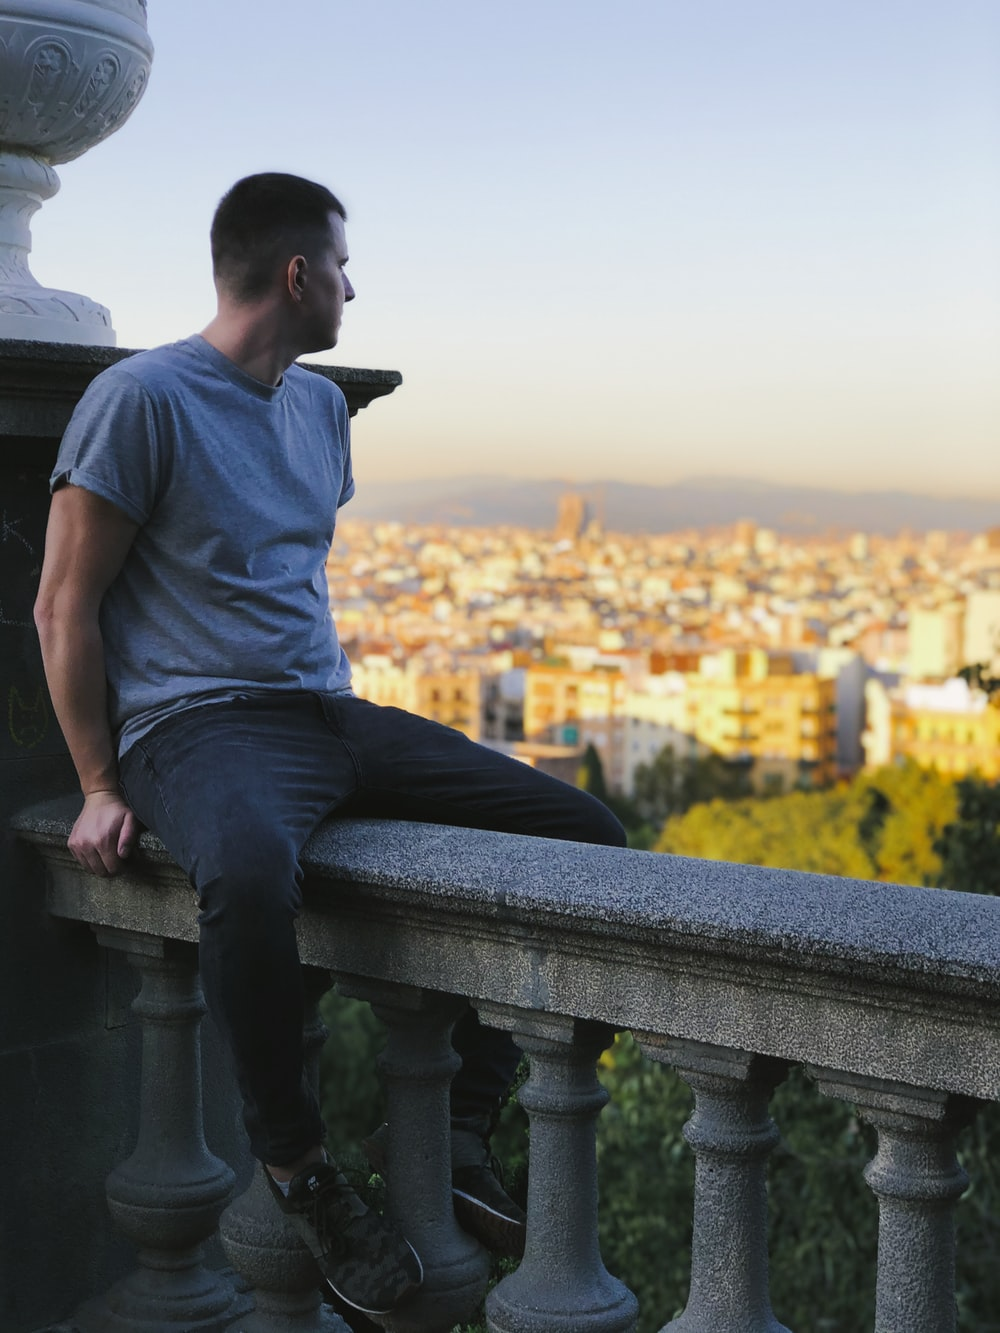 man in gray crew neck t-shirt and blue denim jeans sitting on gray concrete bench